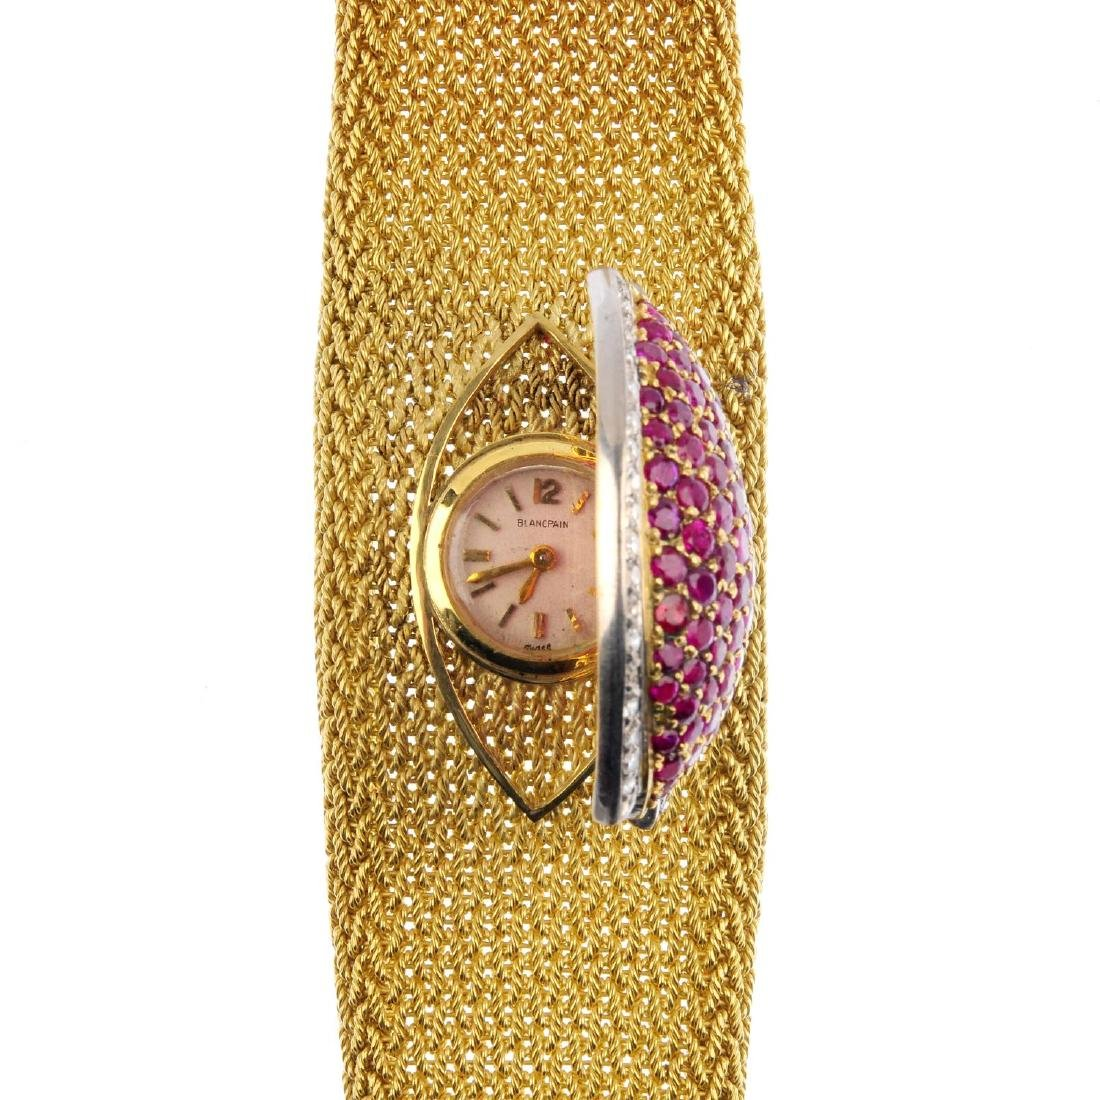 BLANCPAIN - a lady's diamond and ruby wrist watch. The